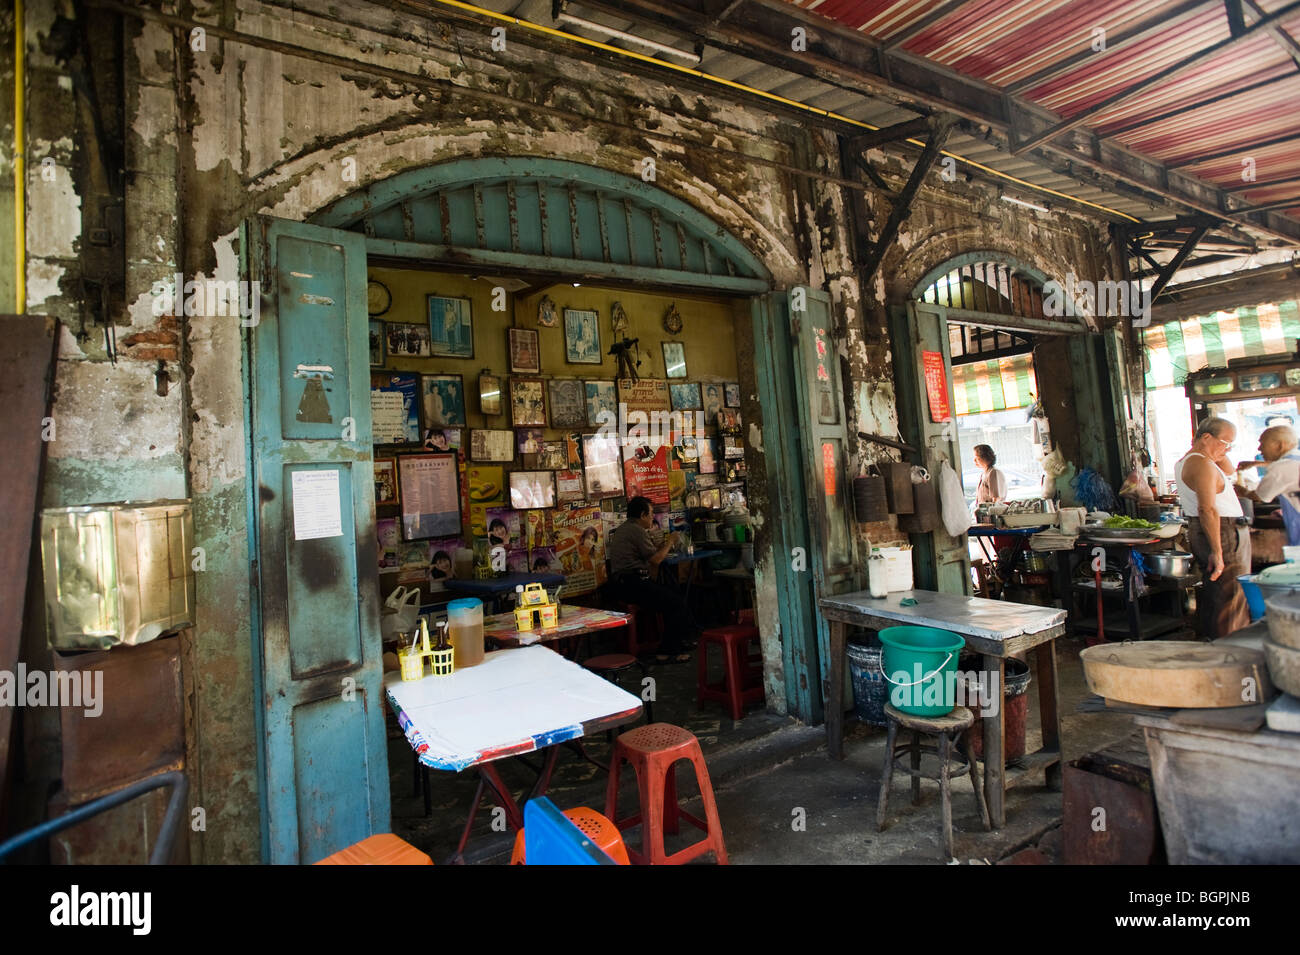 old chinese restaurant in china town bangkok thailand stock photo 27542519 alamy. Black Bedroom Furniture Sets. Home Design Ideas